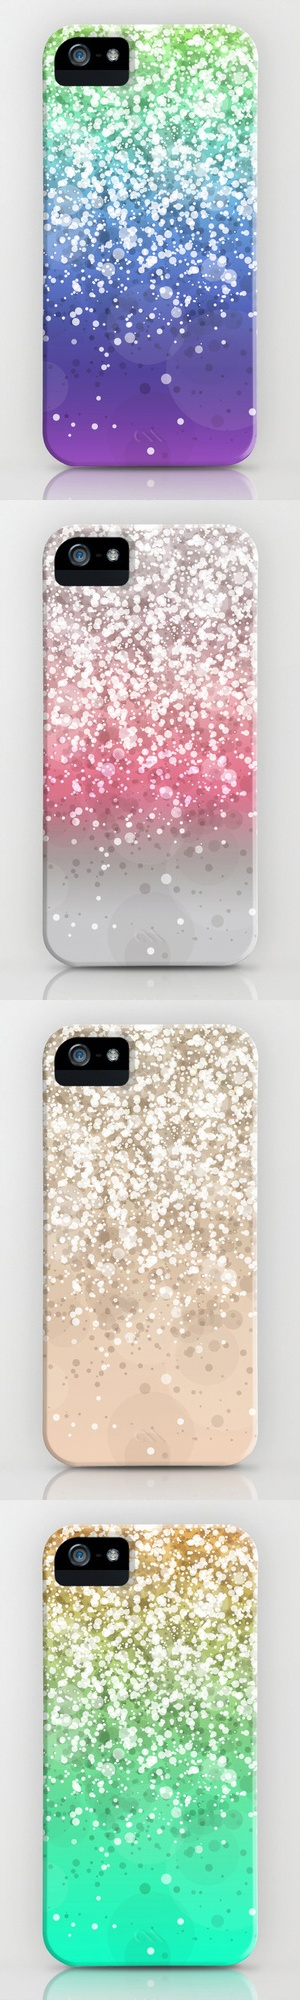 Here new colors for my glitter design, I hope you like it! - $35.00 these are all nice!